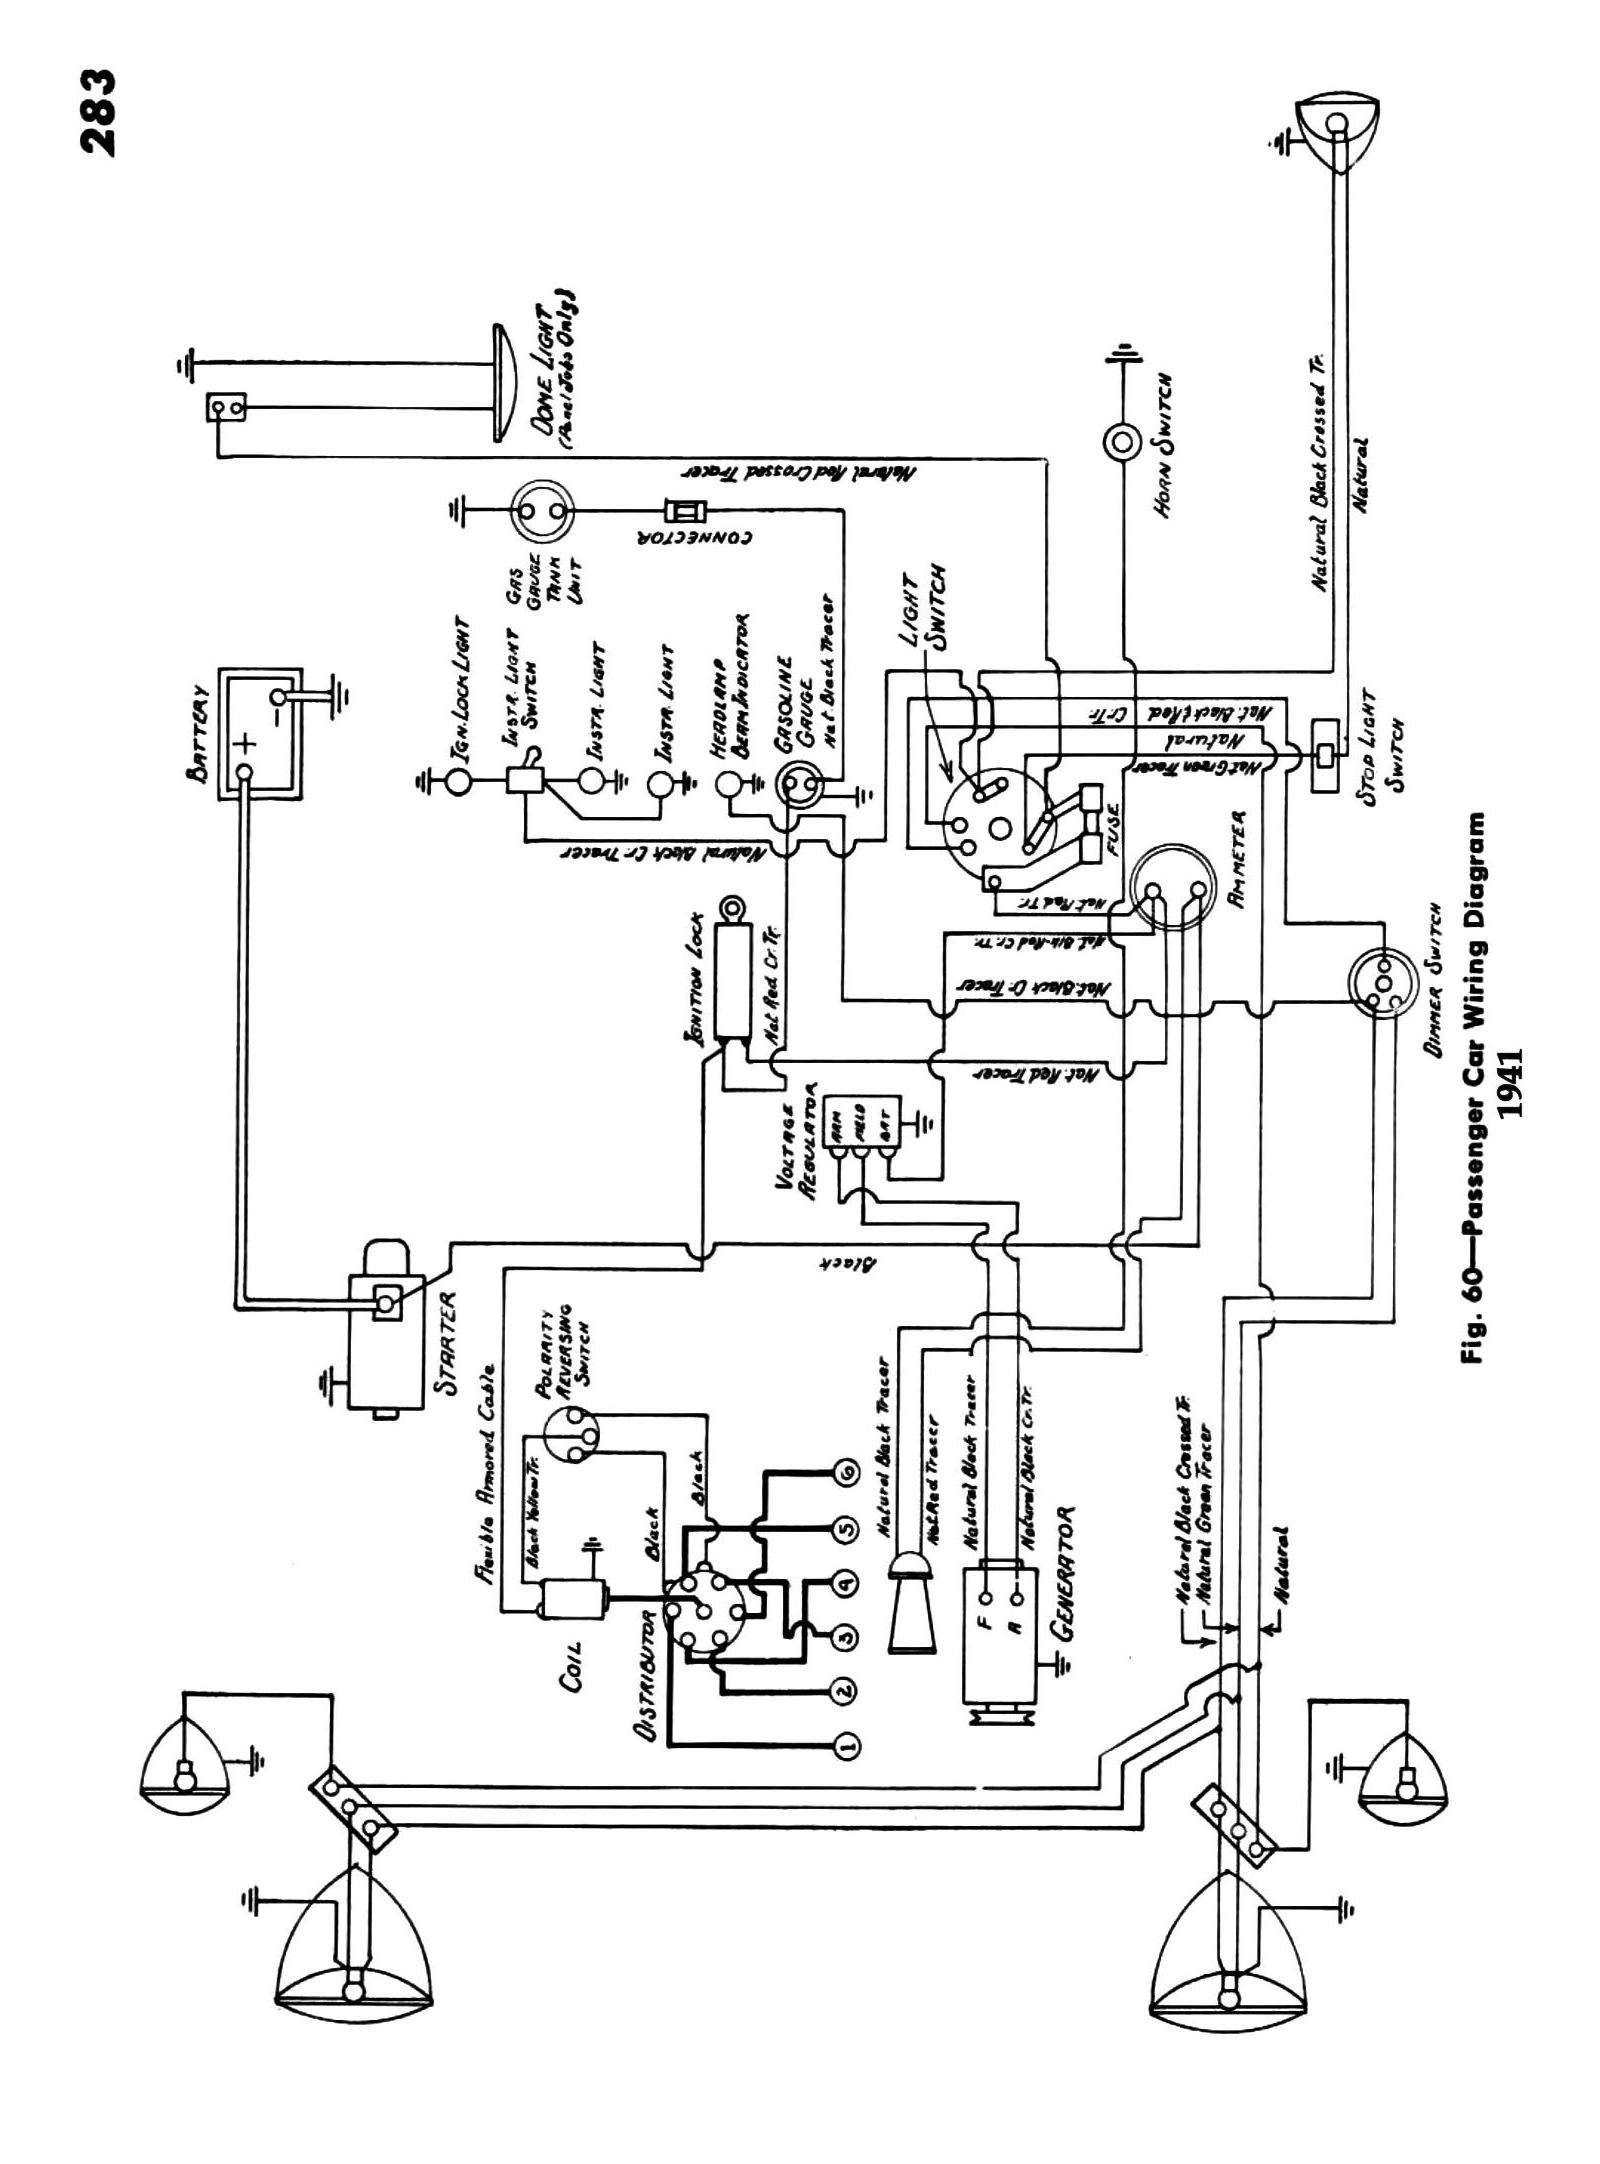 hight resolution of 1961 283 chevy engine diagram wiring diagram283 chevy engine diagram 9 chevy wiring diagrams1941 1941